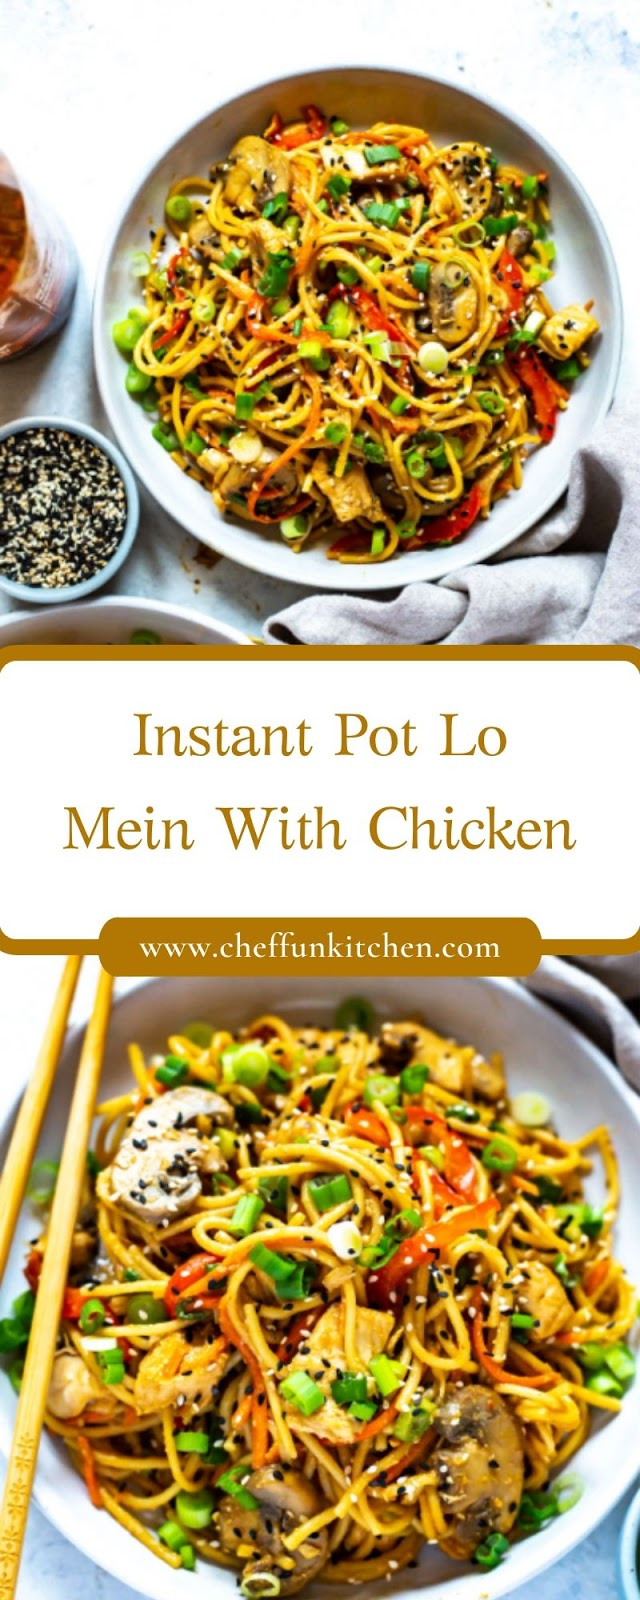 Instant Pot Lo Mein With Chicken